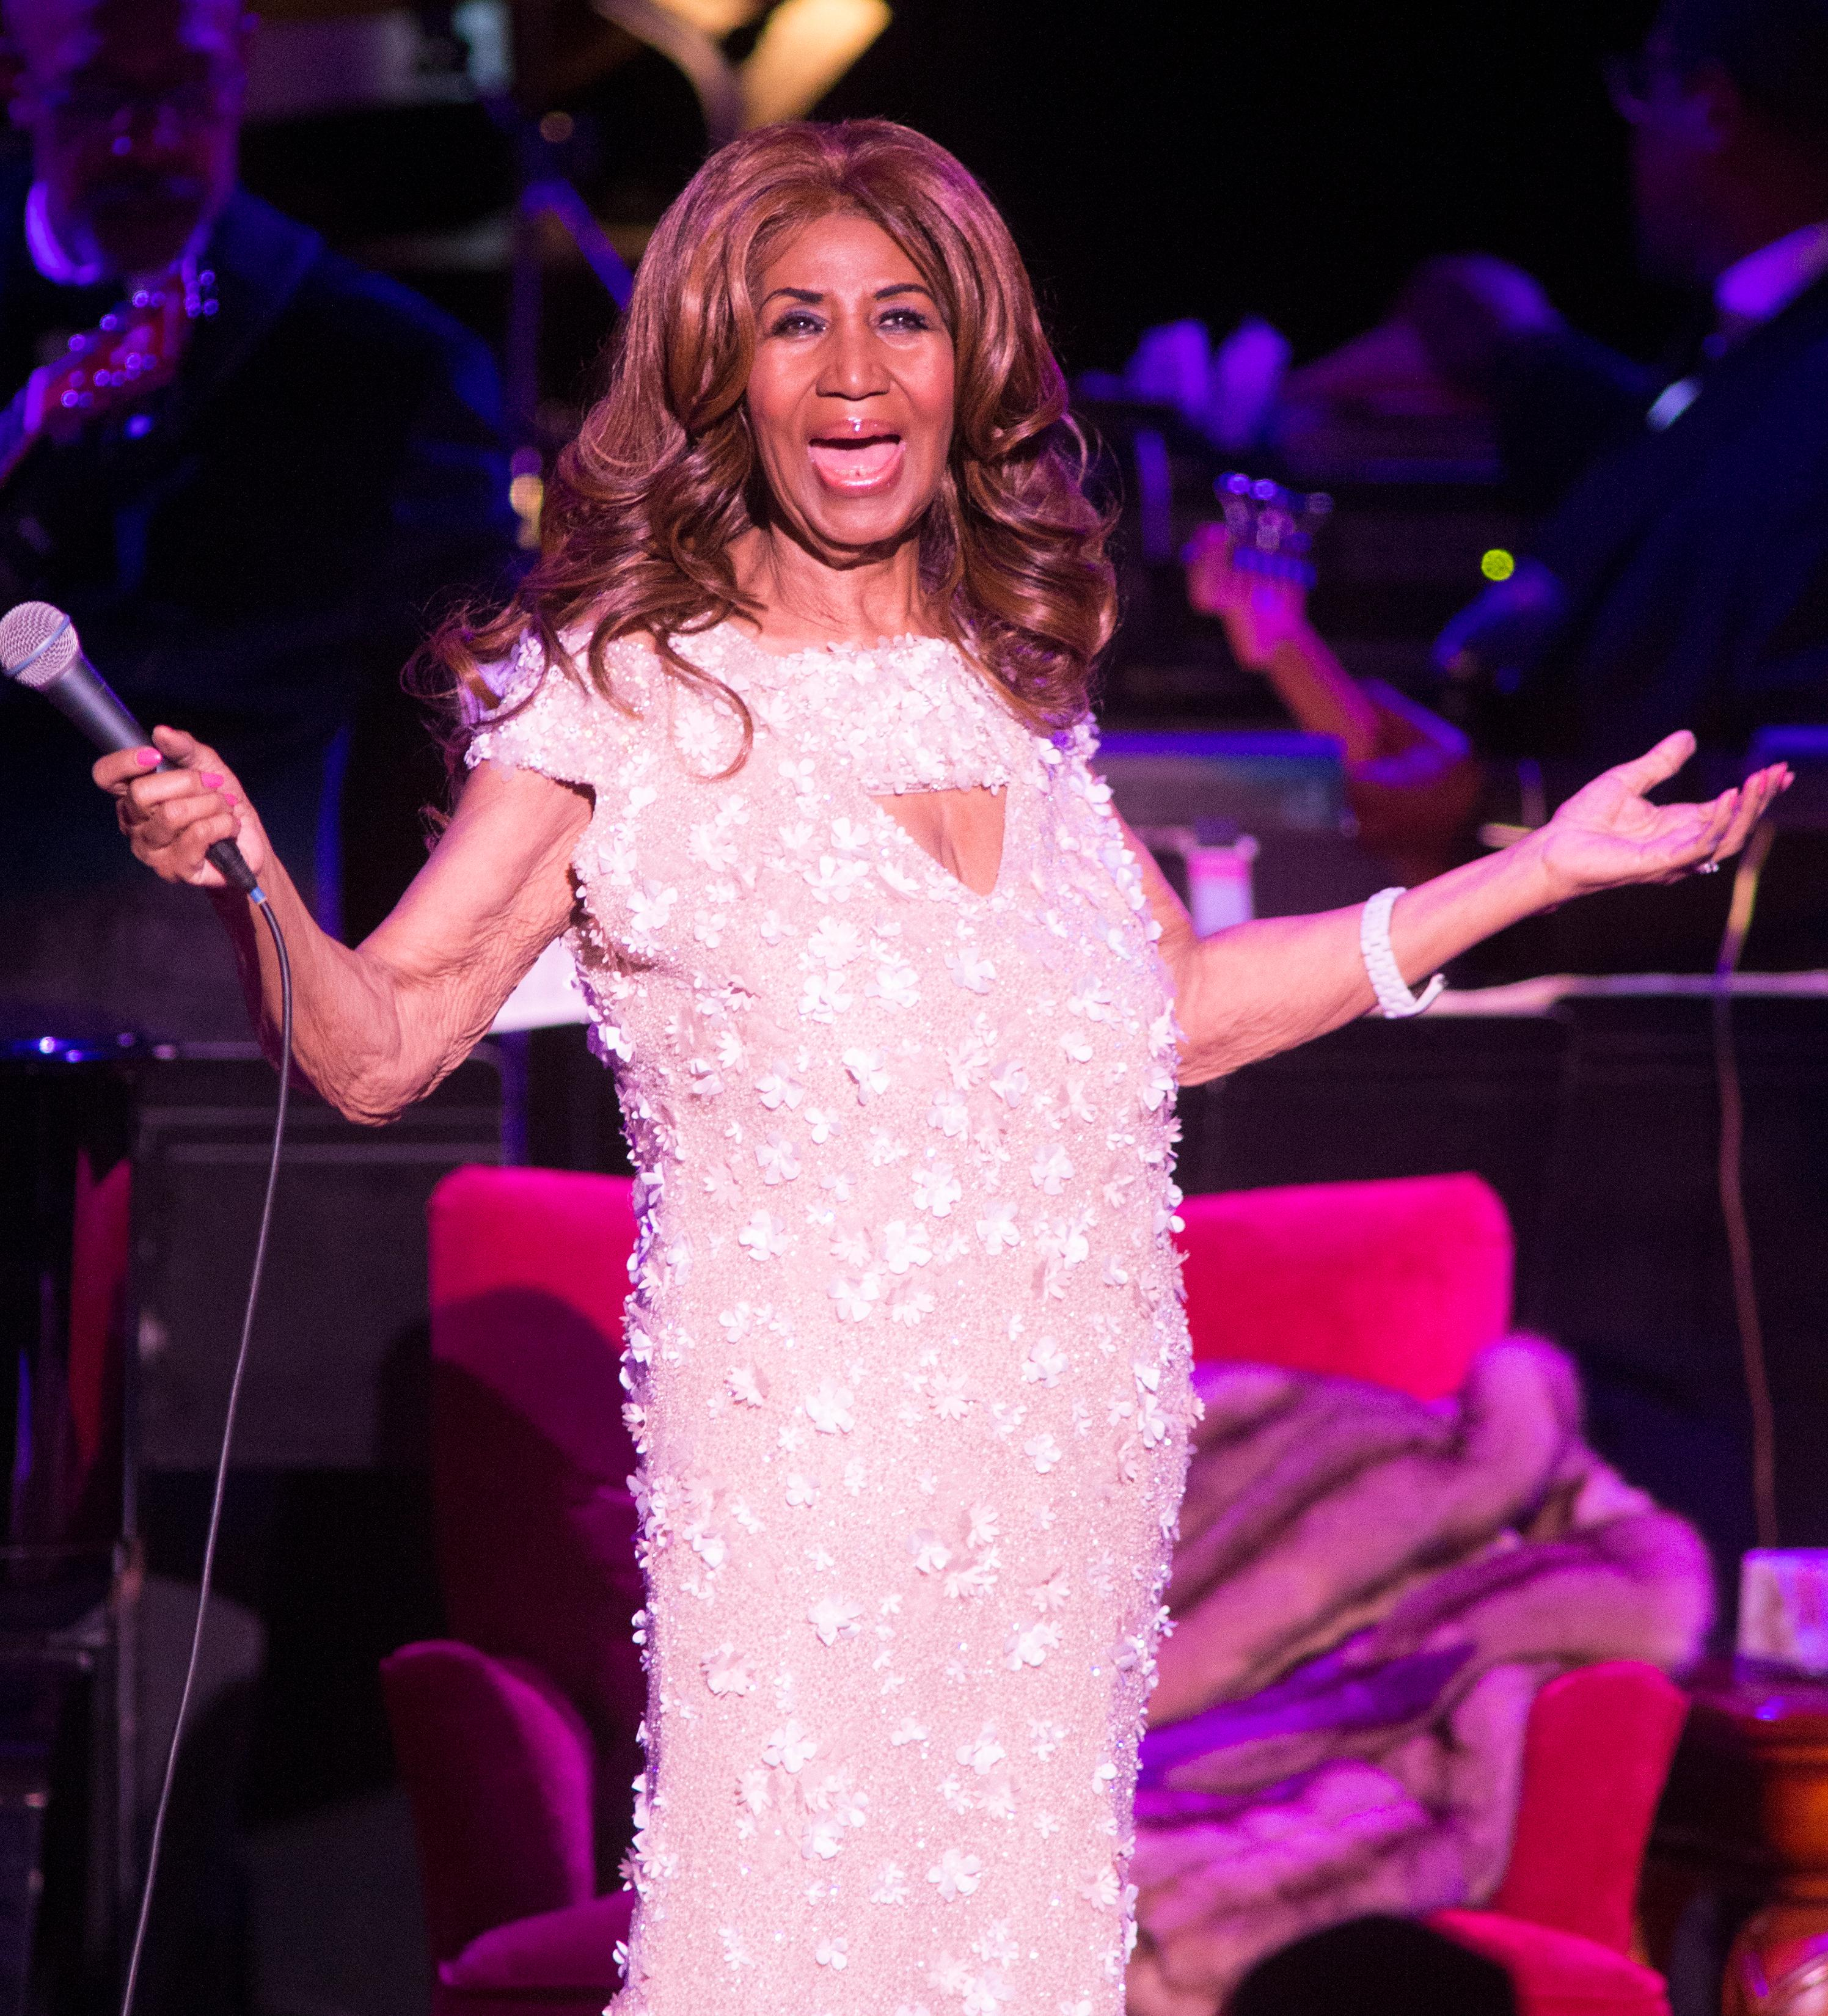 FILE - In this Aug. 26, 2017 file photo, Aretha Franklin performs in concert at The Mann Center for the Performing Arts in Philadelphia. Franklin died Thursday, Aug. 16, 2018 at her home in Detroit.  She was 76. (Photo by Owen Sweeney/Invision/AP, File)